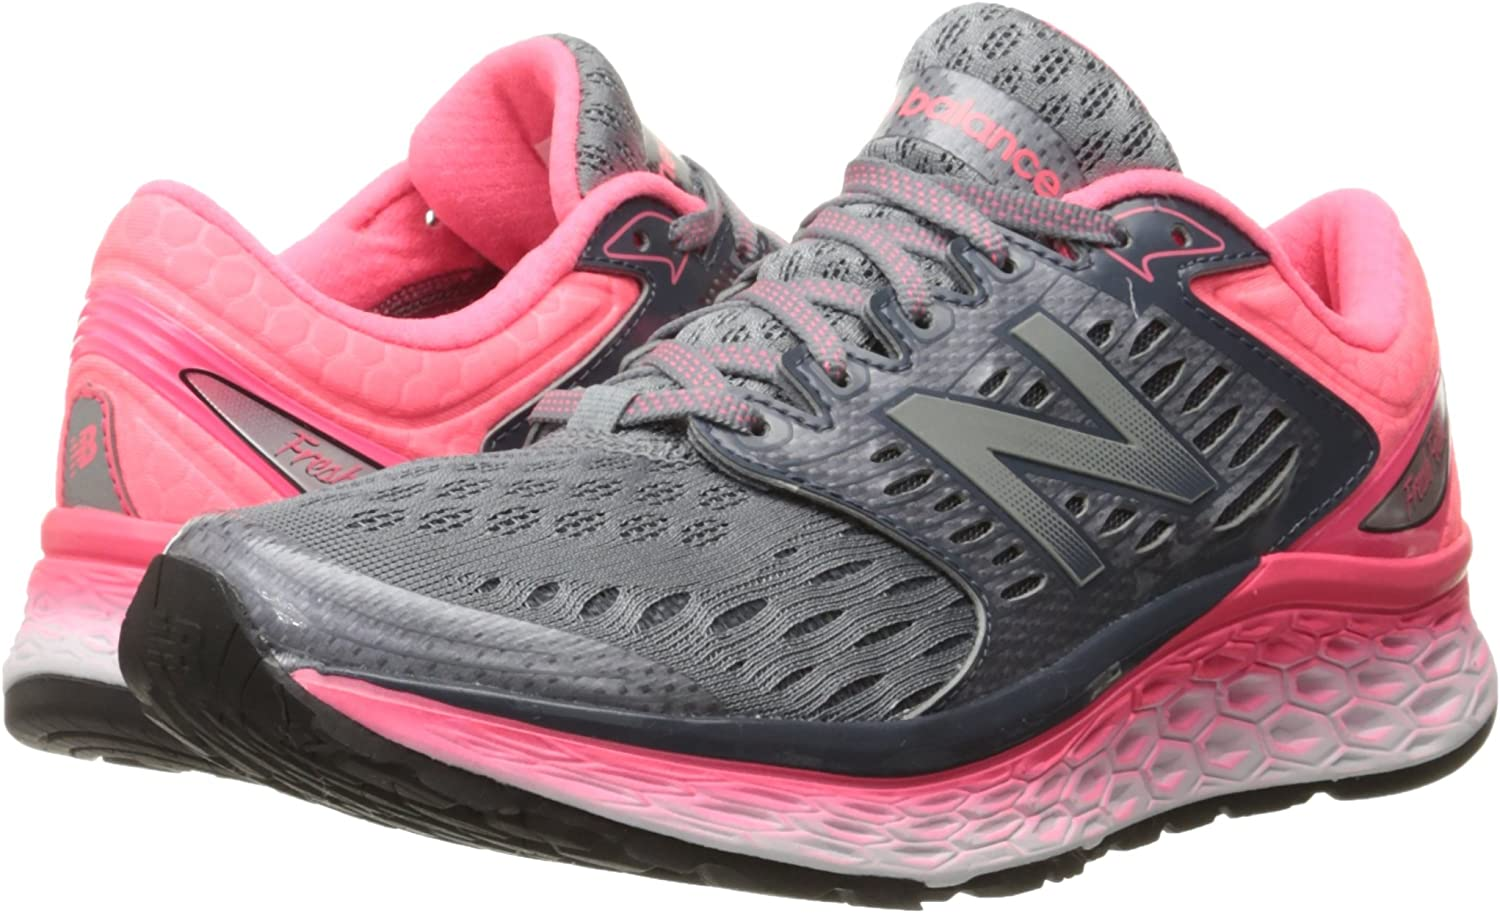 New Balance Womens Fresh Foam 1080v6 Running Shoe, Silver/Pink, 5 D US: Amazon.es: Zapatos y complementos